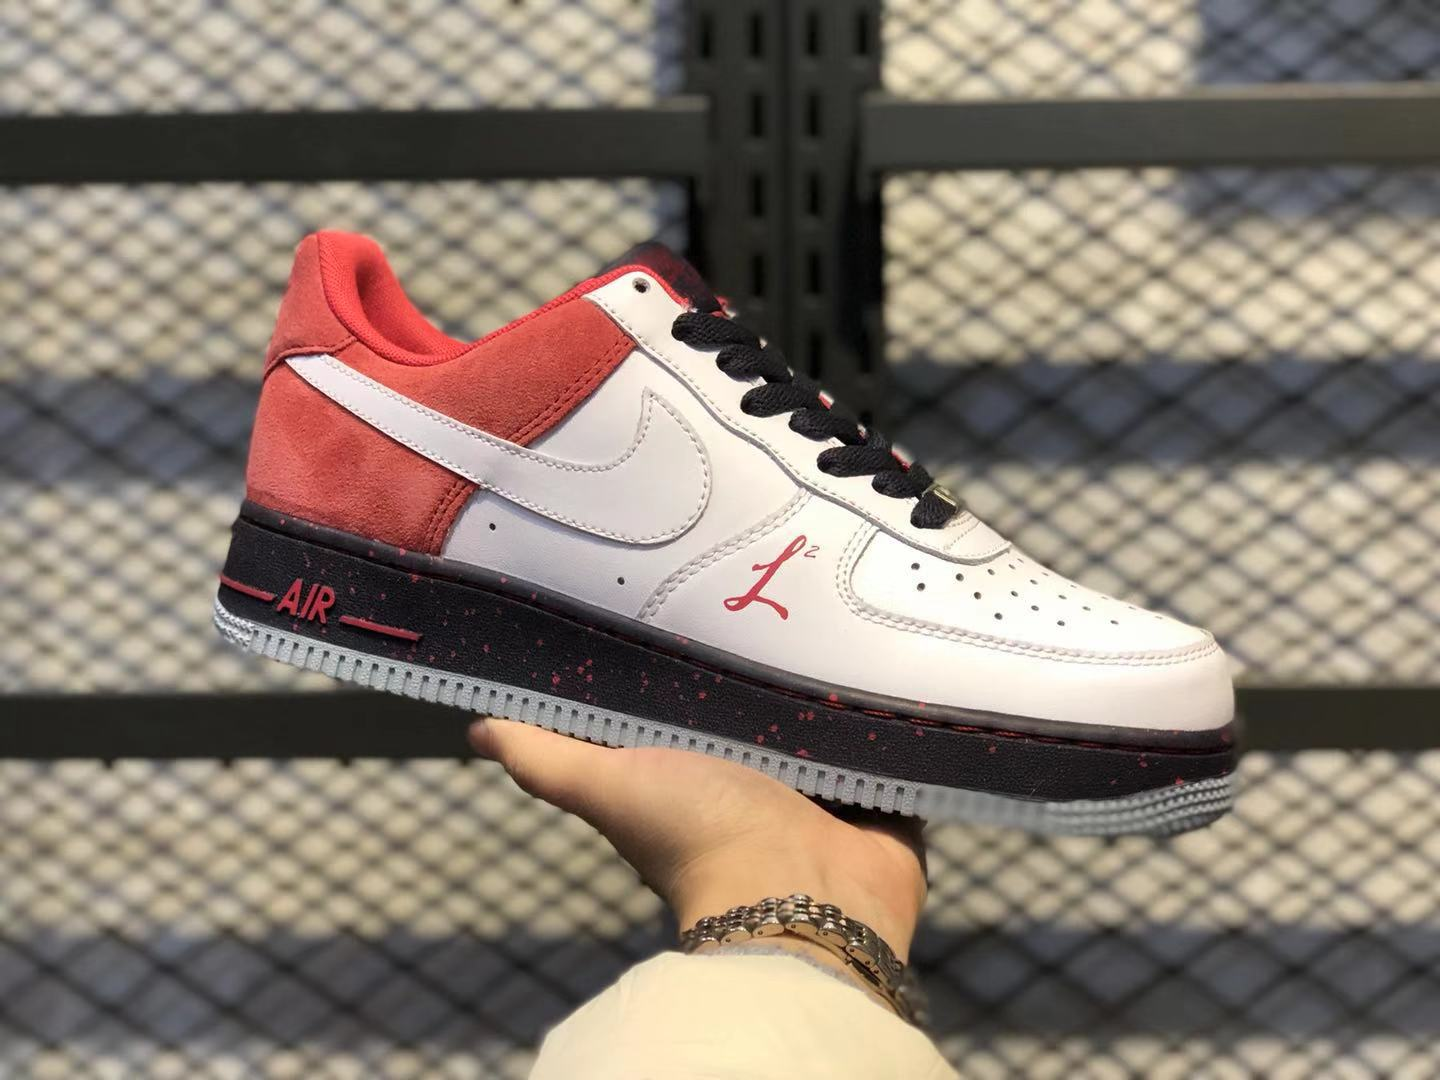 Nike Air Force‎ 1 Low White/Black-Red Men's Casual Shoes For Online Sale